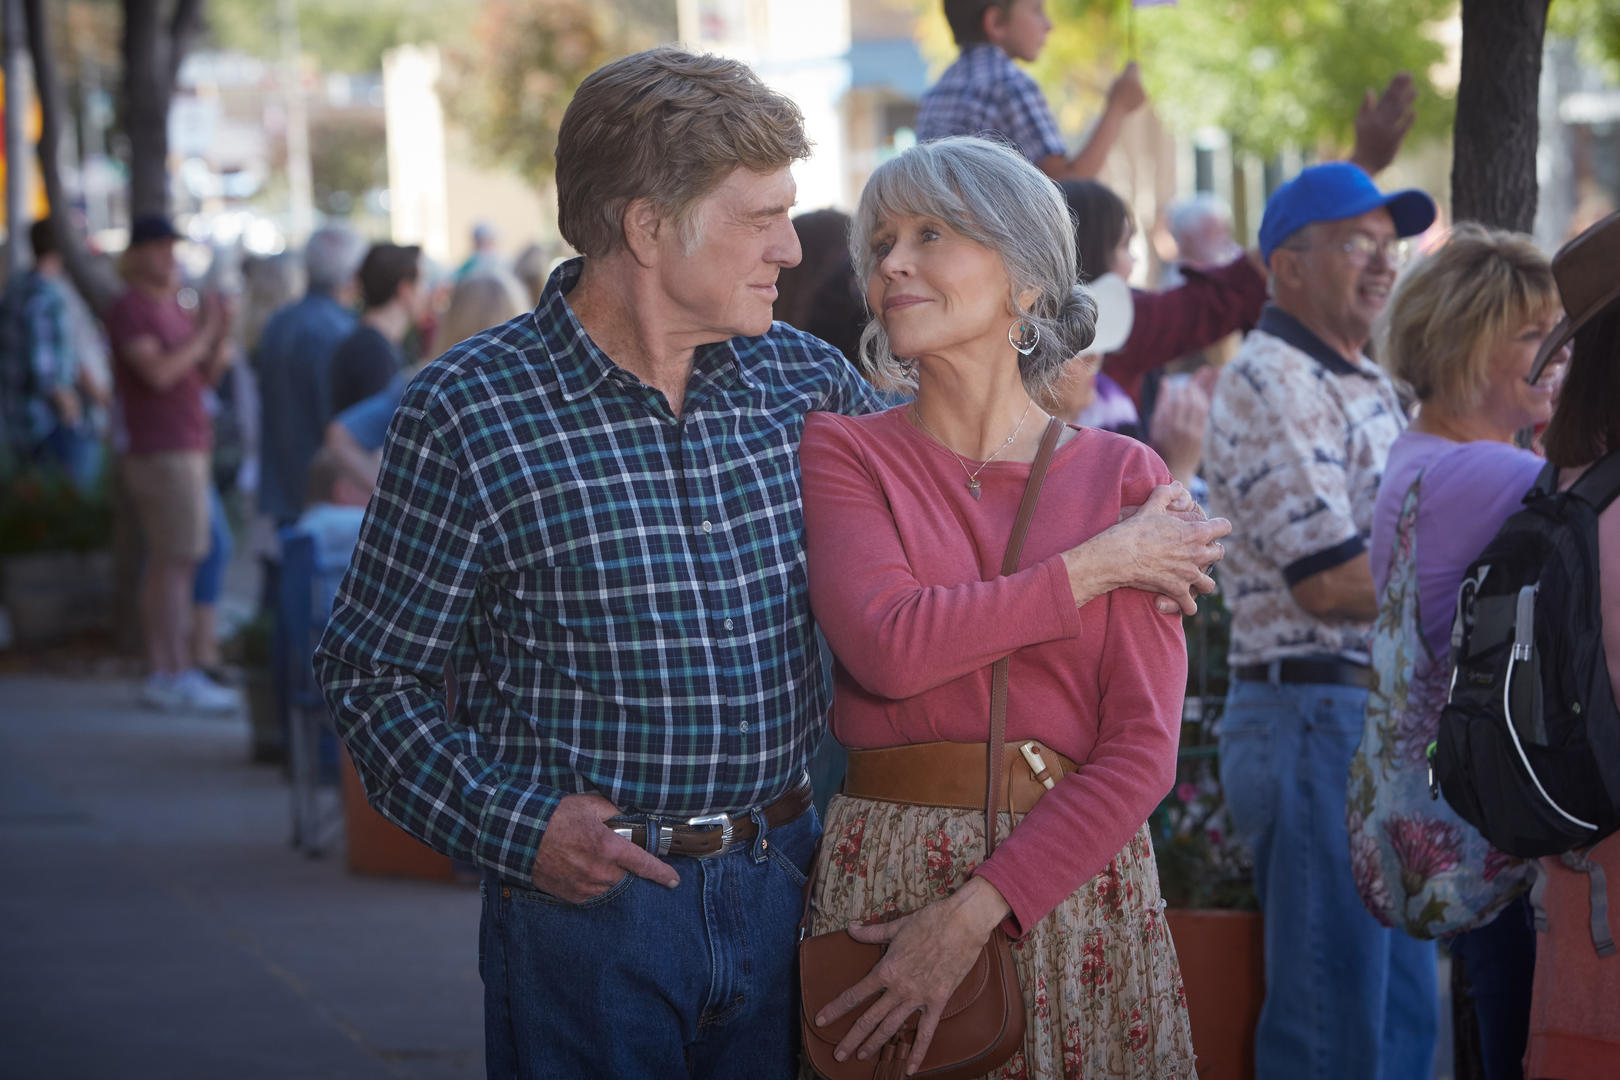 Robert Redford and Jane Fonda Reunite in Netflix's Our Souls at Night First Look Image